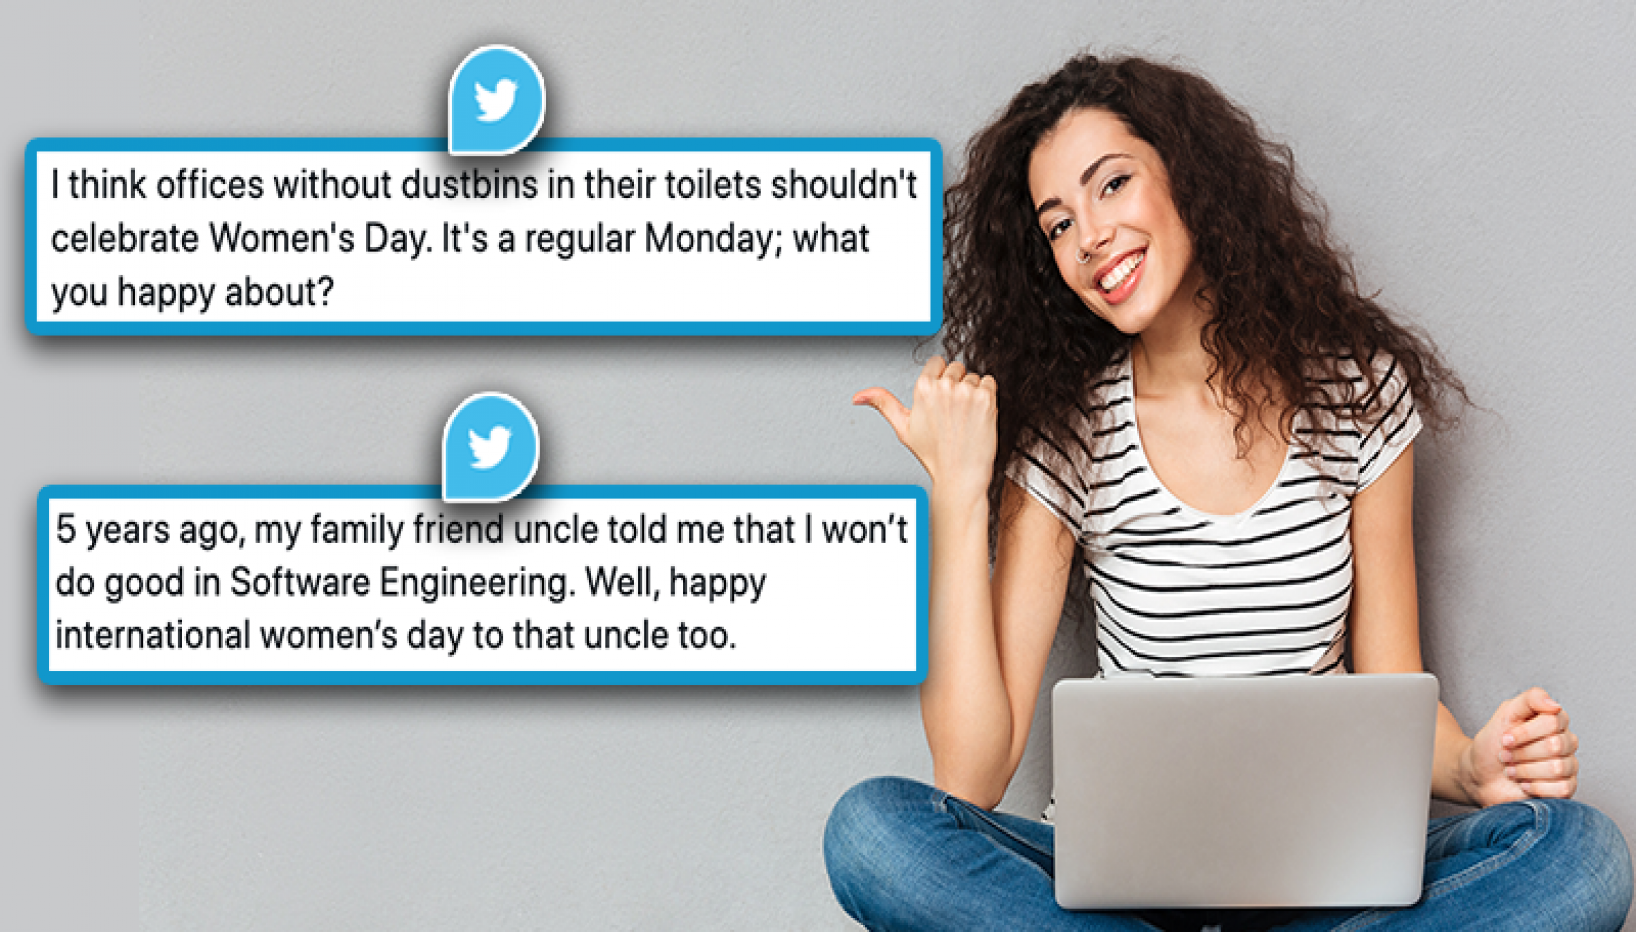 Here Are 8 Tweets That Show What Women Really Want This Women's Day